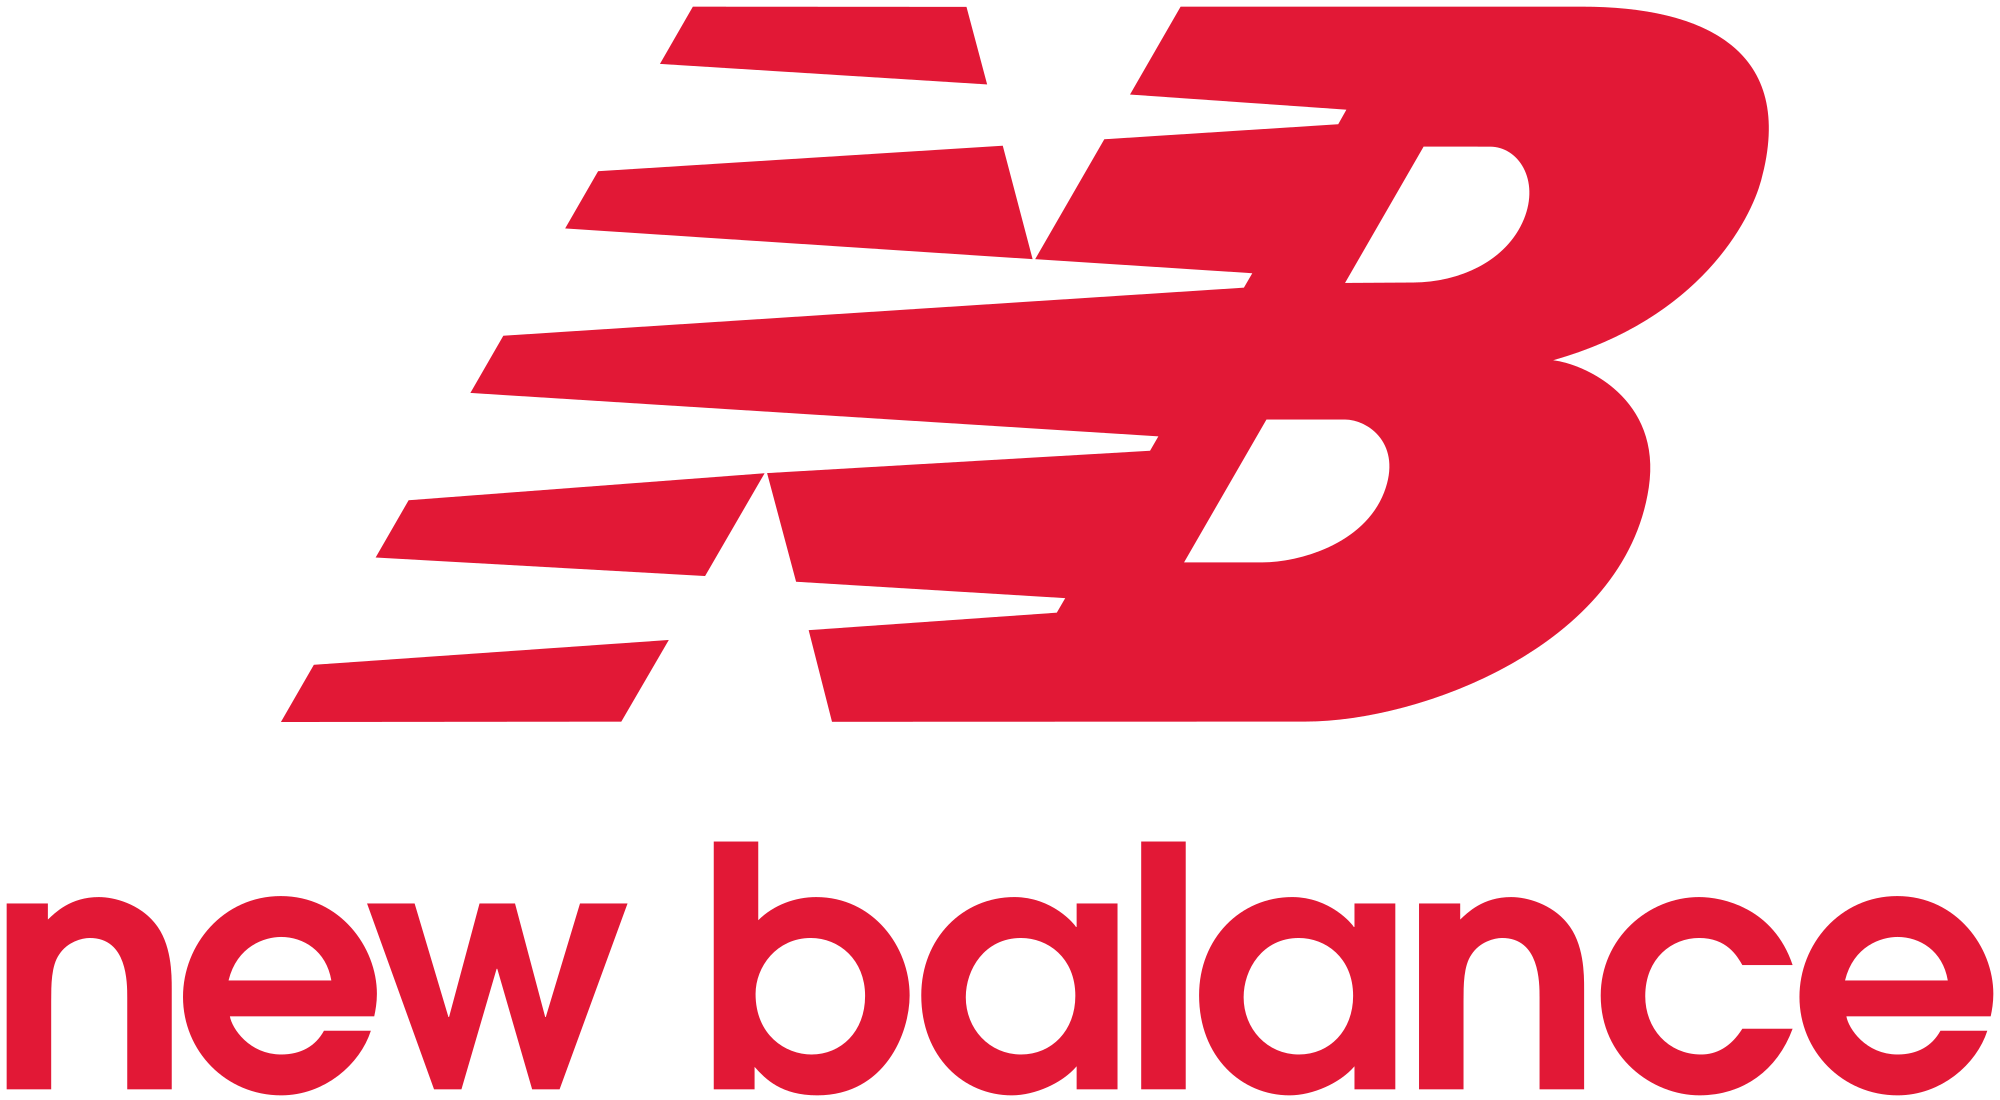 new-balance-red-logo.png